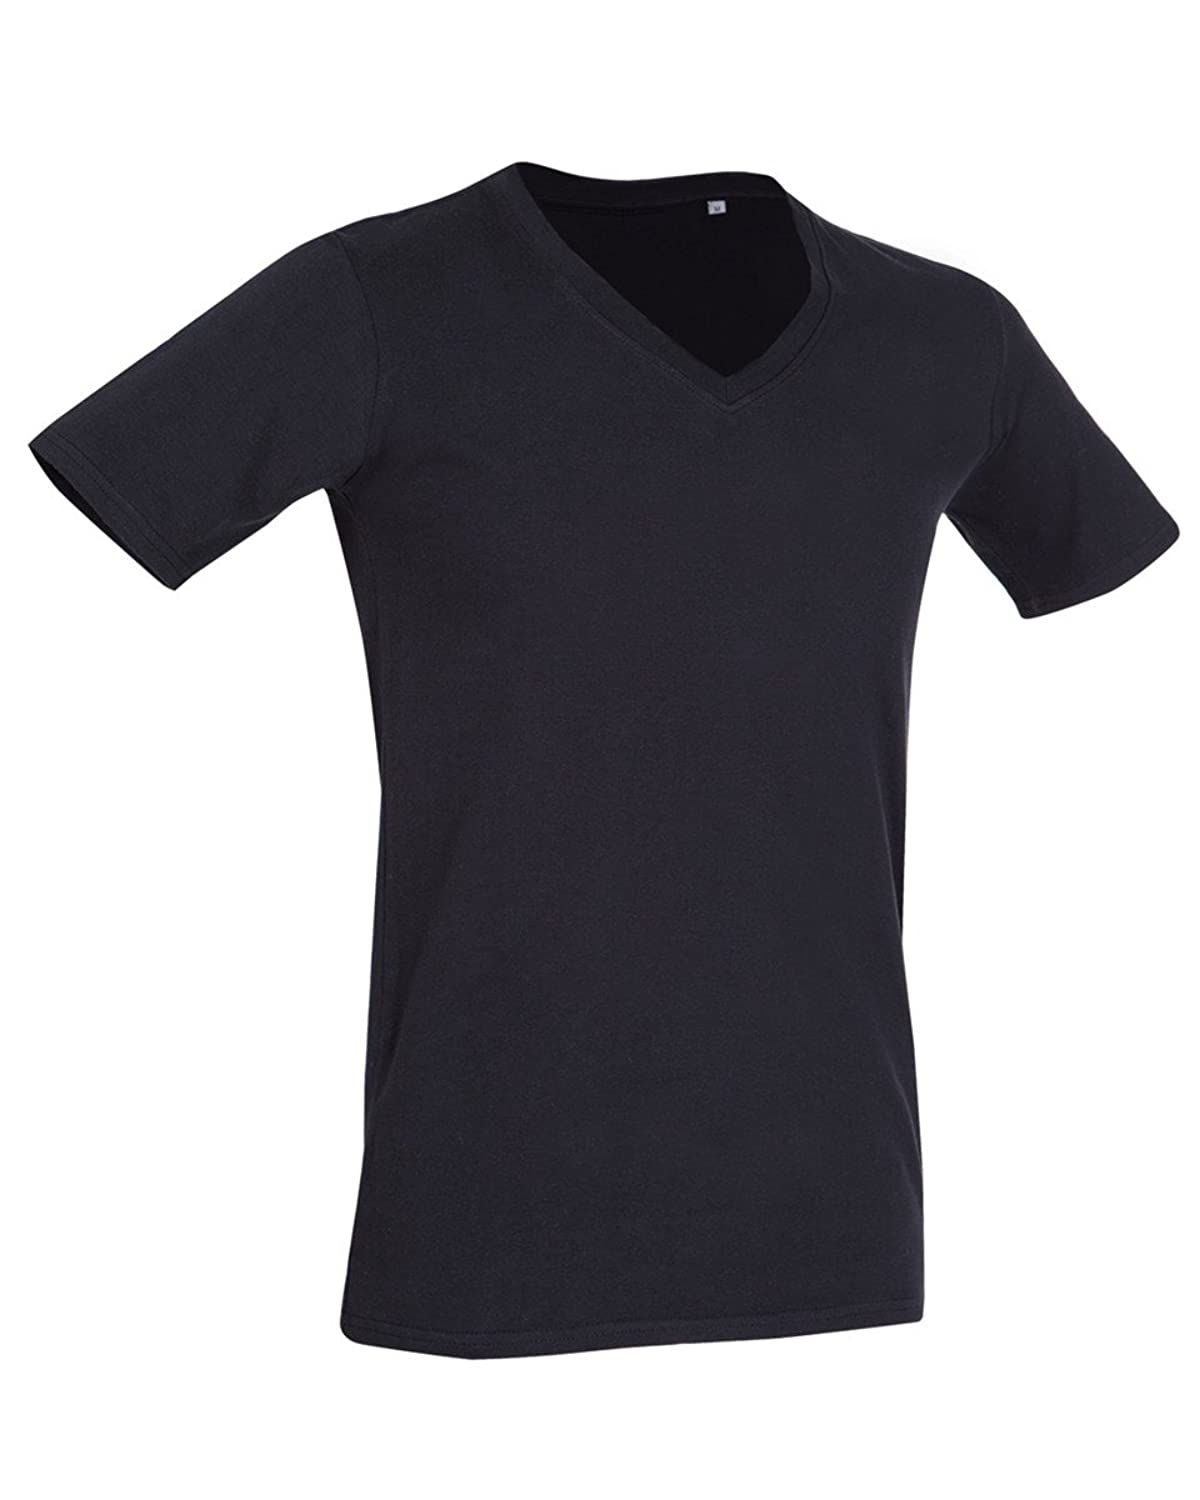 6c28e044194 Amazon.com  Stedman Stars ST9690 Dean Mens Deep V Neck T-Shirt  Clothing